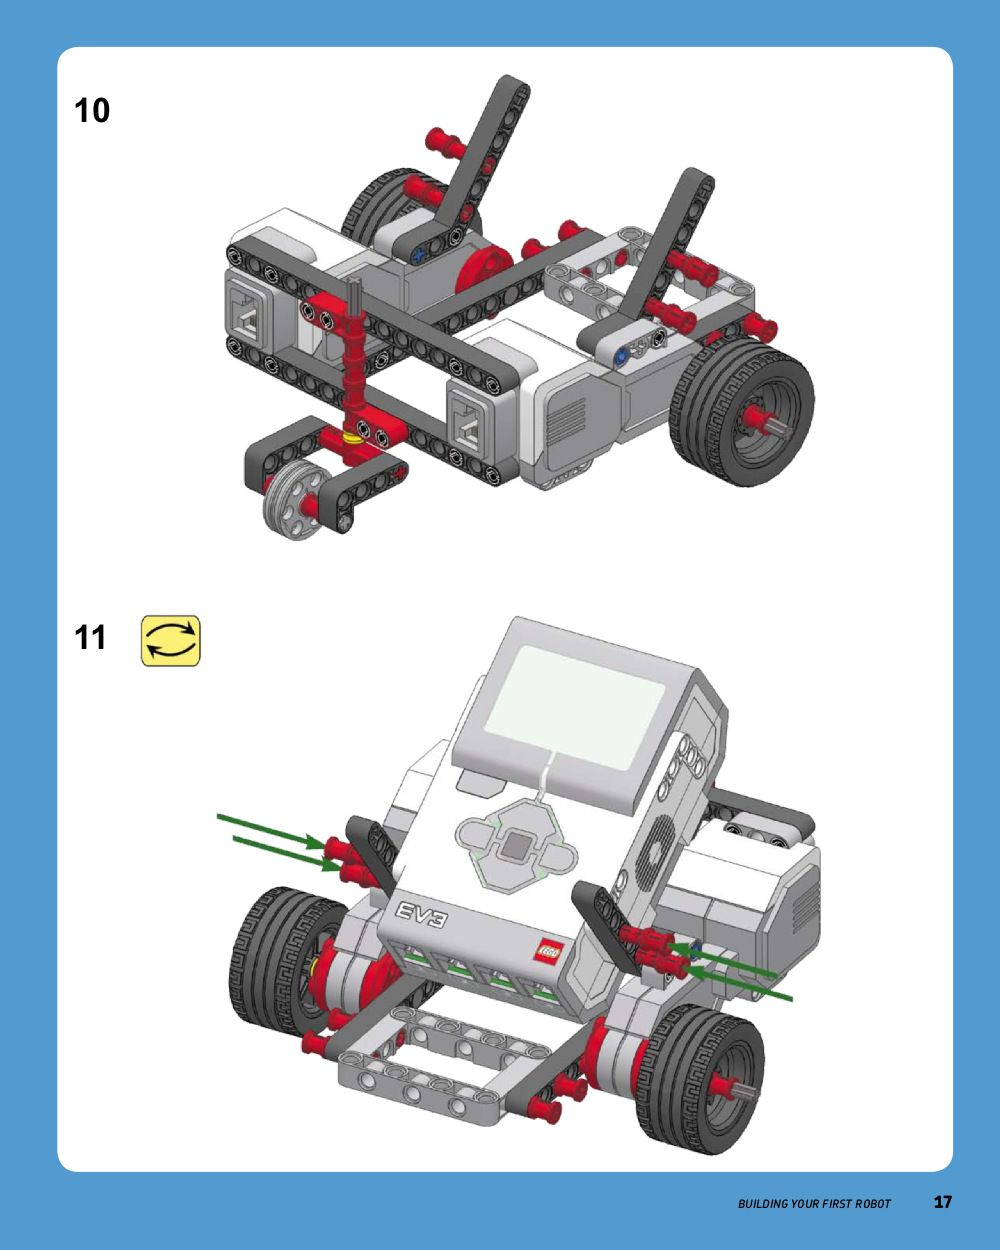 Step By Step Building Instructions For A Simple And Sturdy Lego